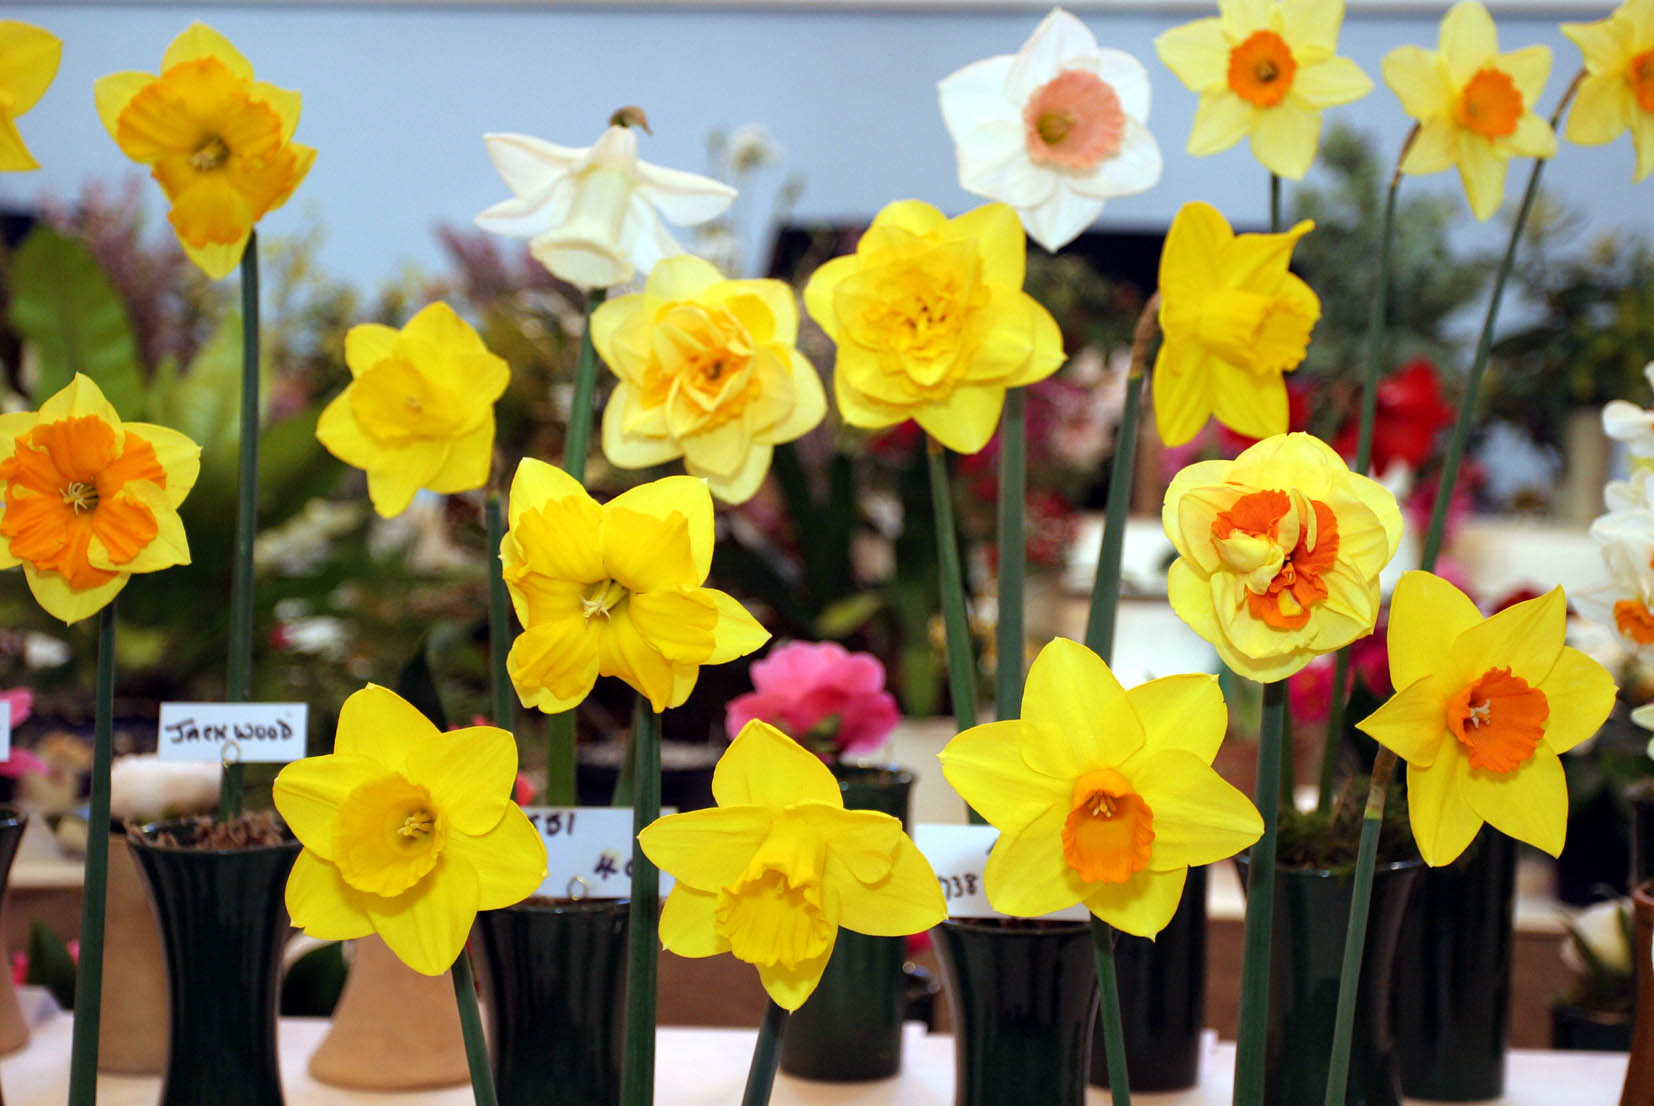 The 84th West Cornwall Spring Show organised by The West Cornwall Horticultural Society in St JohnÕs Hall Penzance. A fine display of daffodils. Pic by Roger Pope/CIOSP